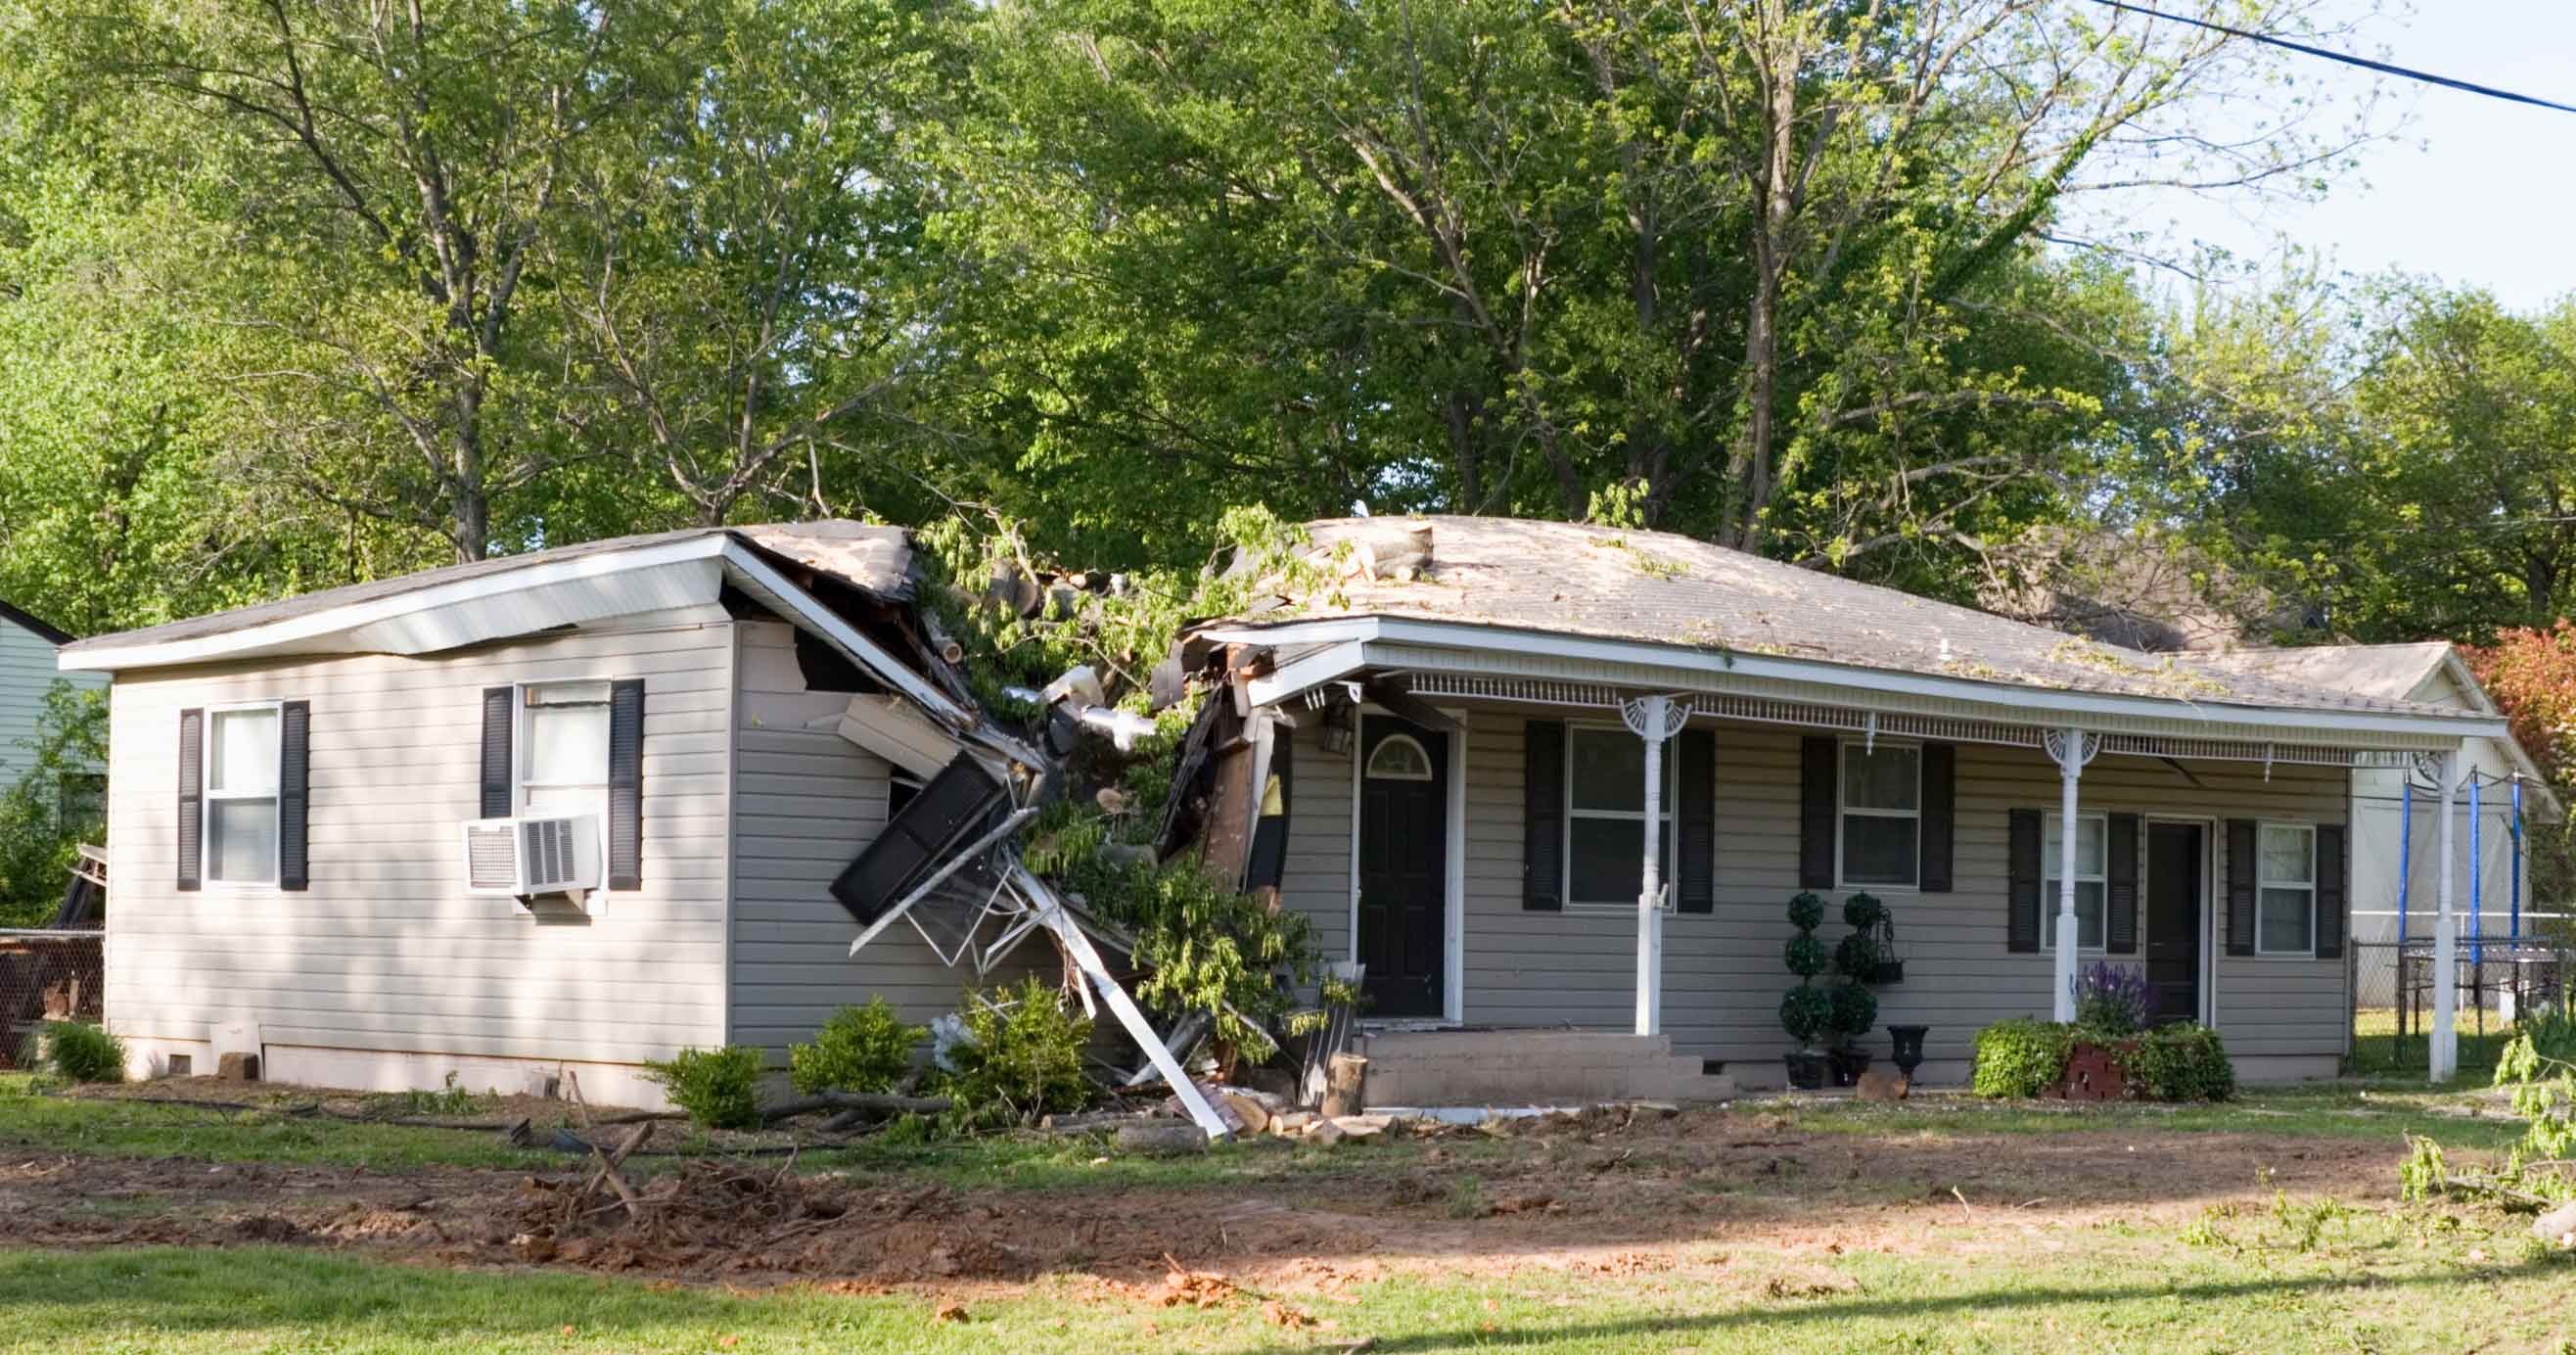 A damaged home after a large tree fell on it during a storm.